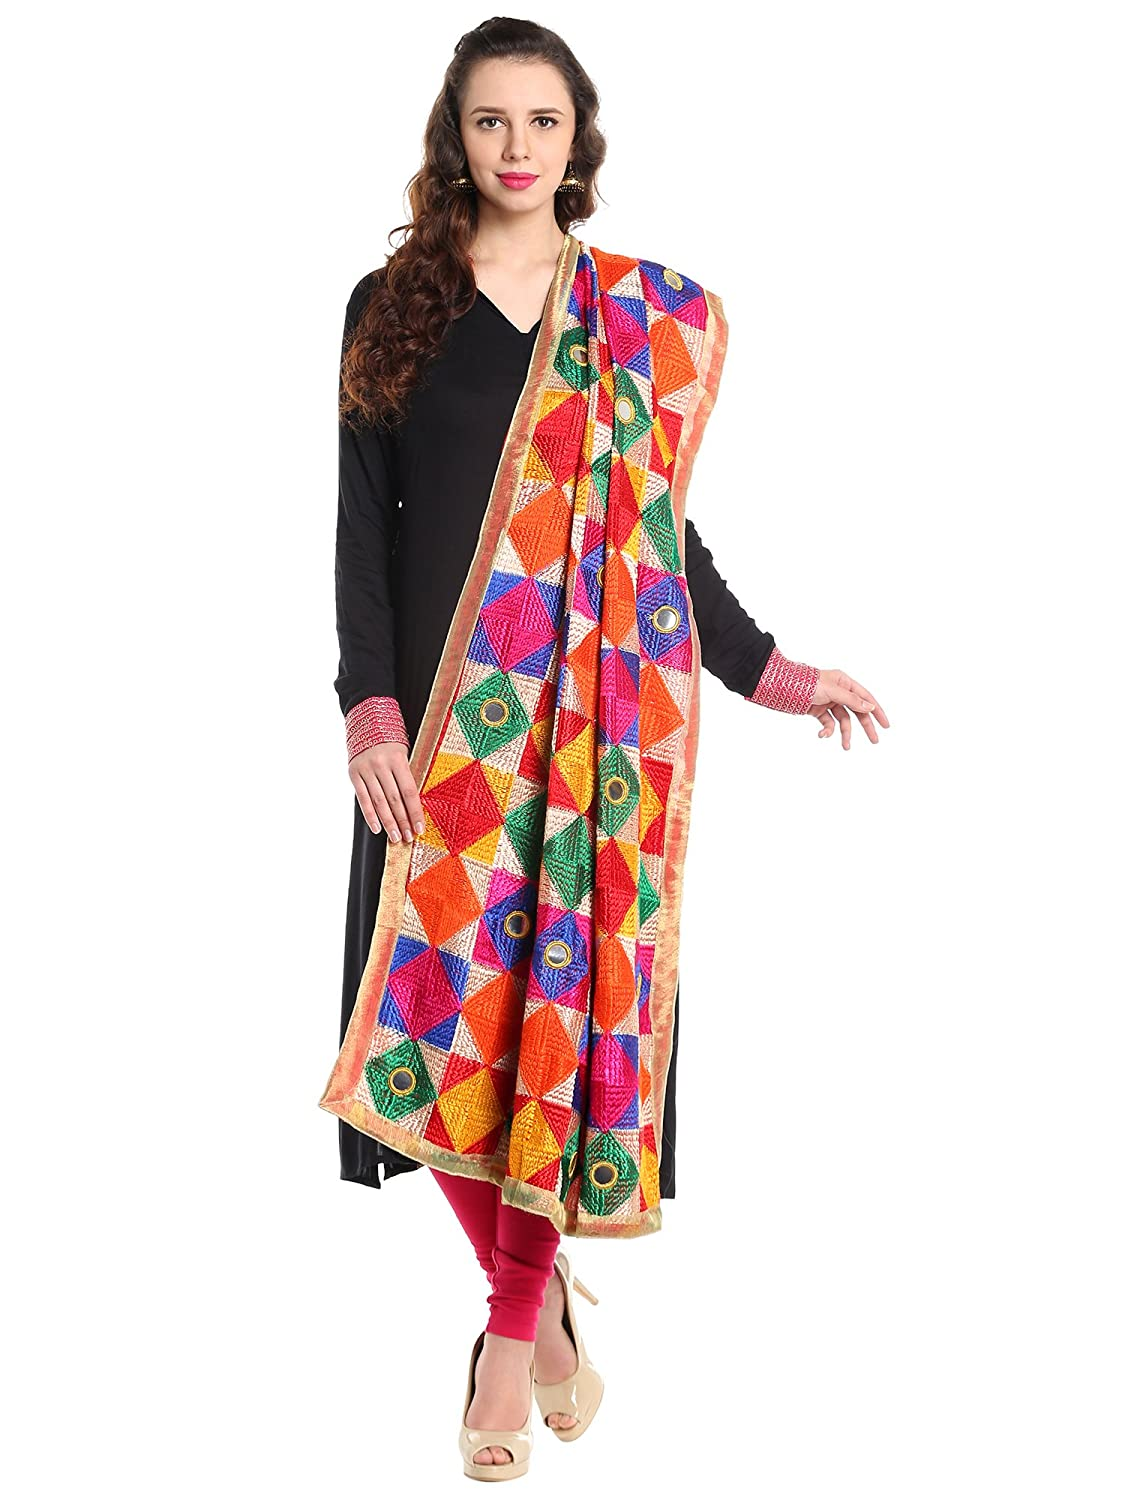 Dupatta Bazaar Woman's Multicoloured Phulkari Embroidered Chiffon Dupatta DB1314